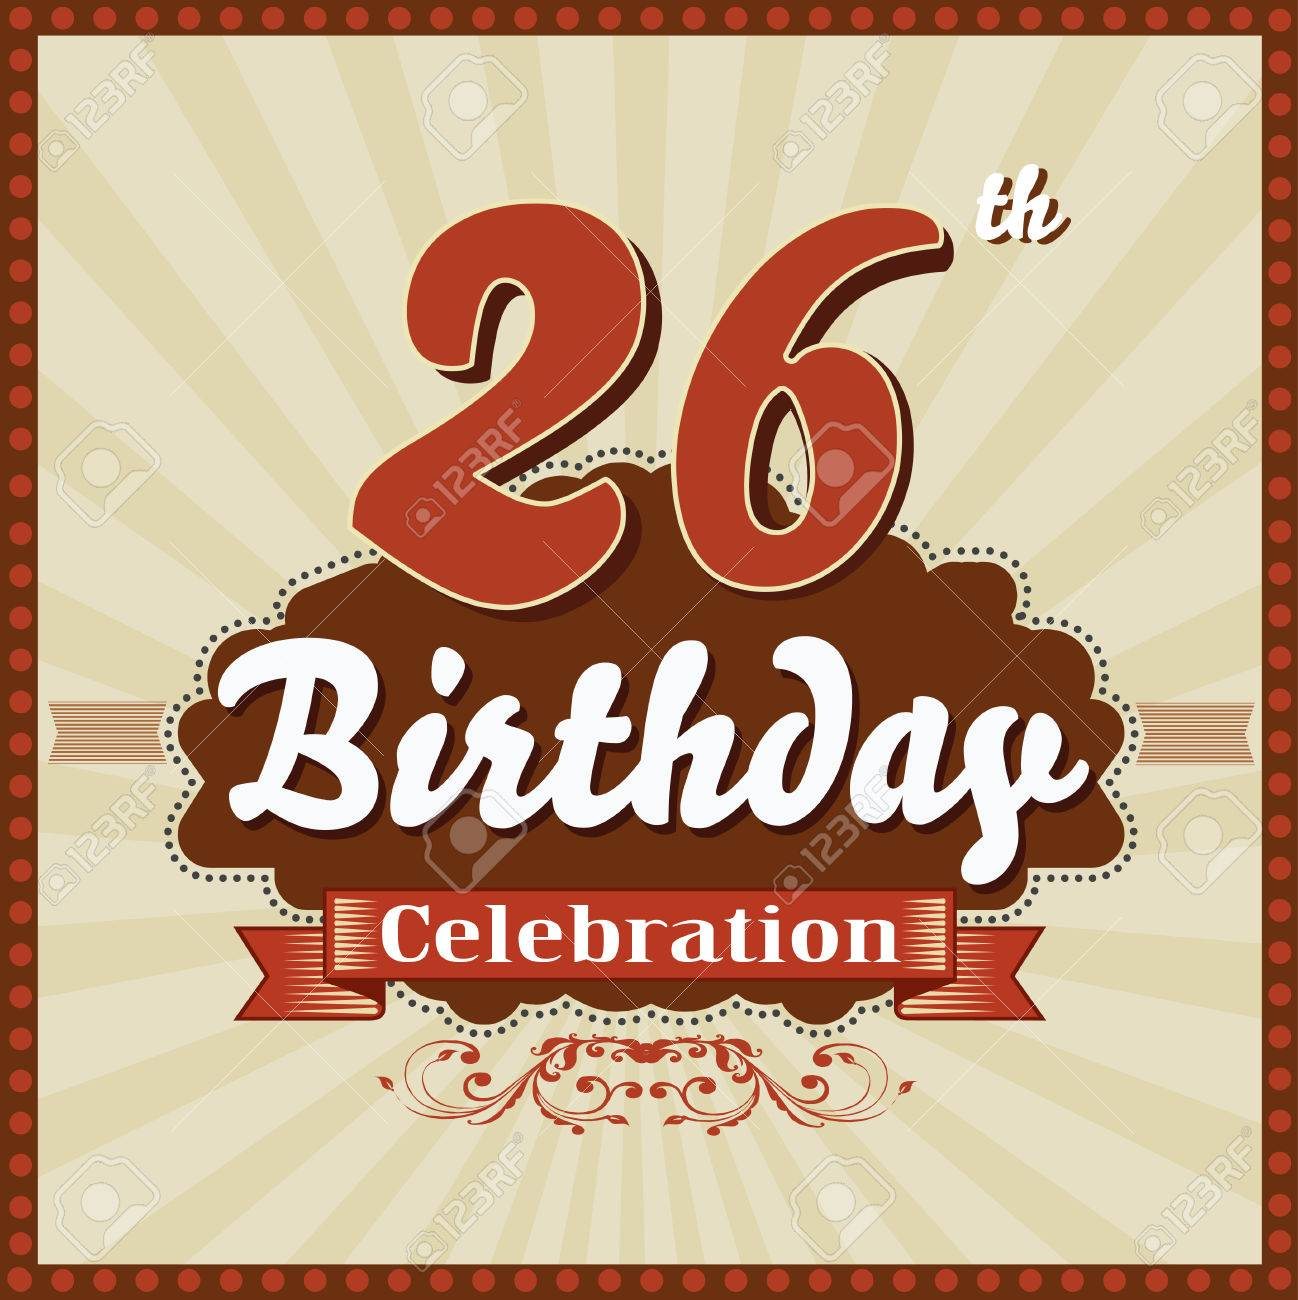 26 year happy birthday celebration retro style card vector eps10 stock vector 41119446